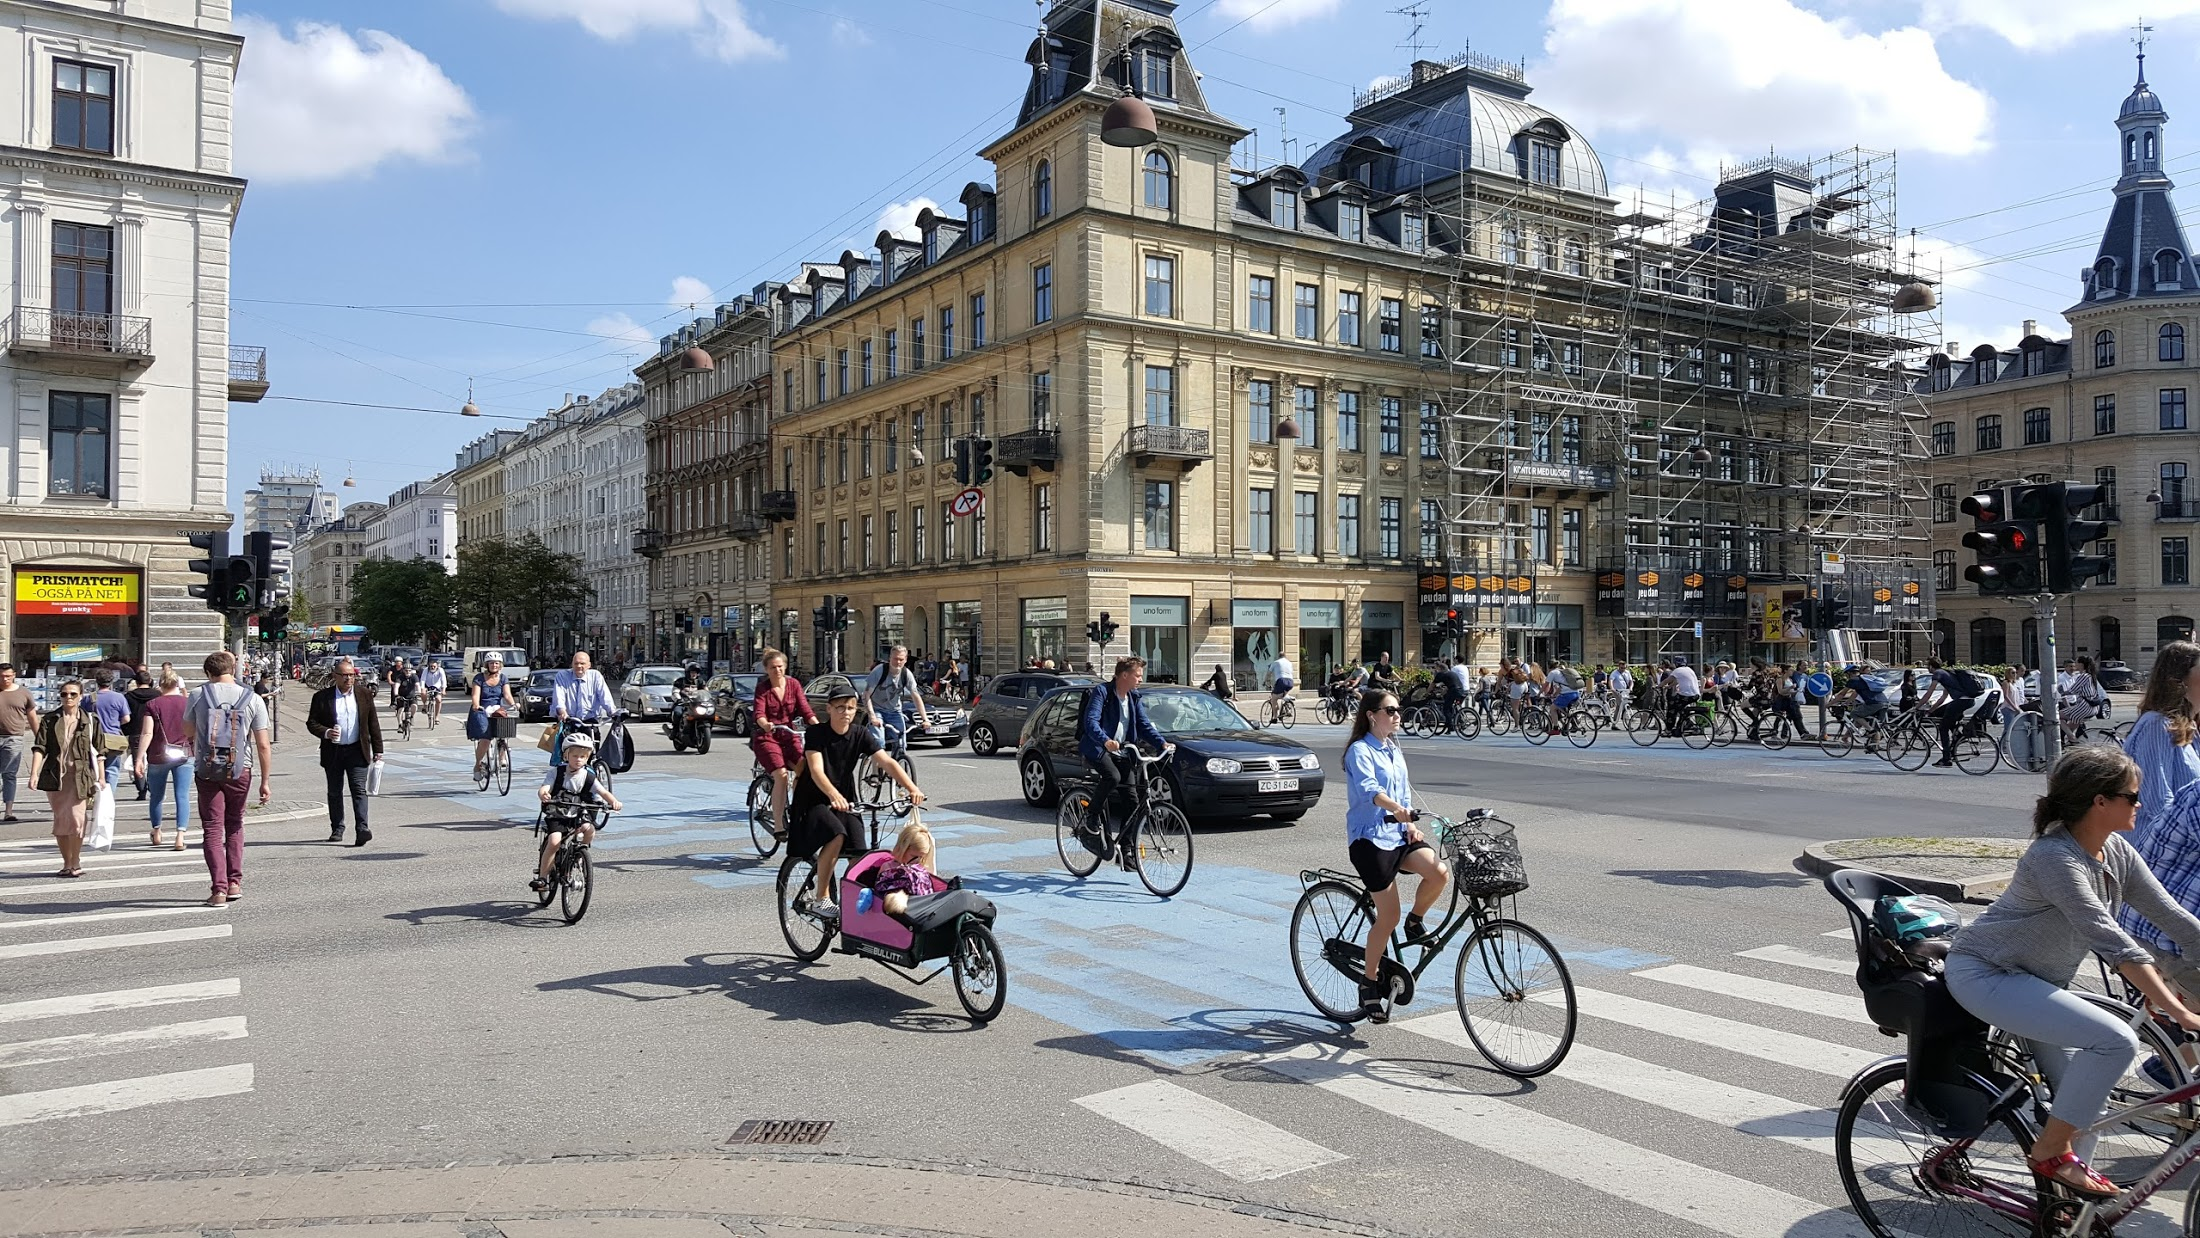 #VisionaryCities Series - Will Helsinki be the next Cycling Capital?